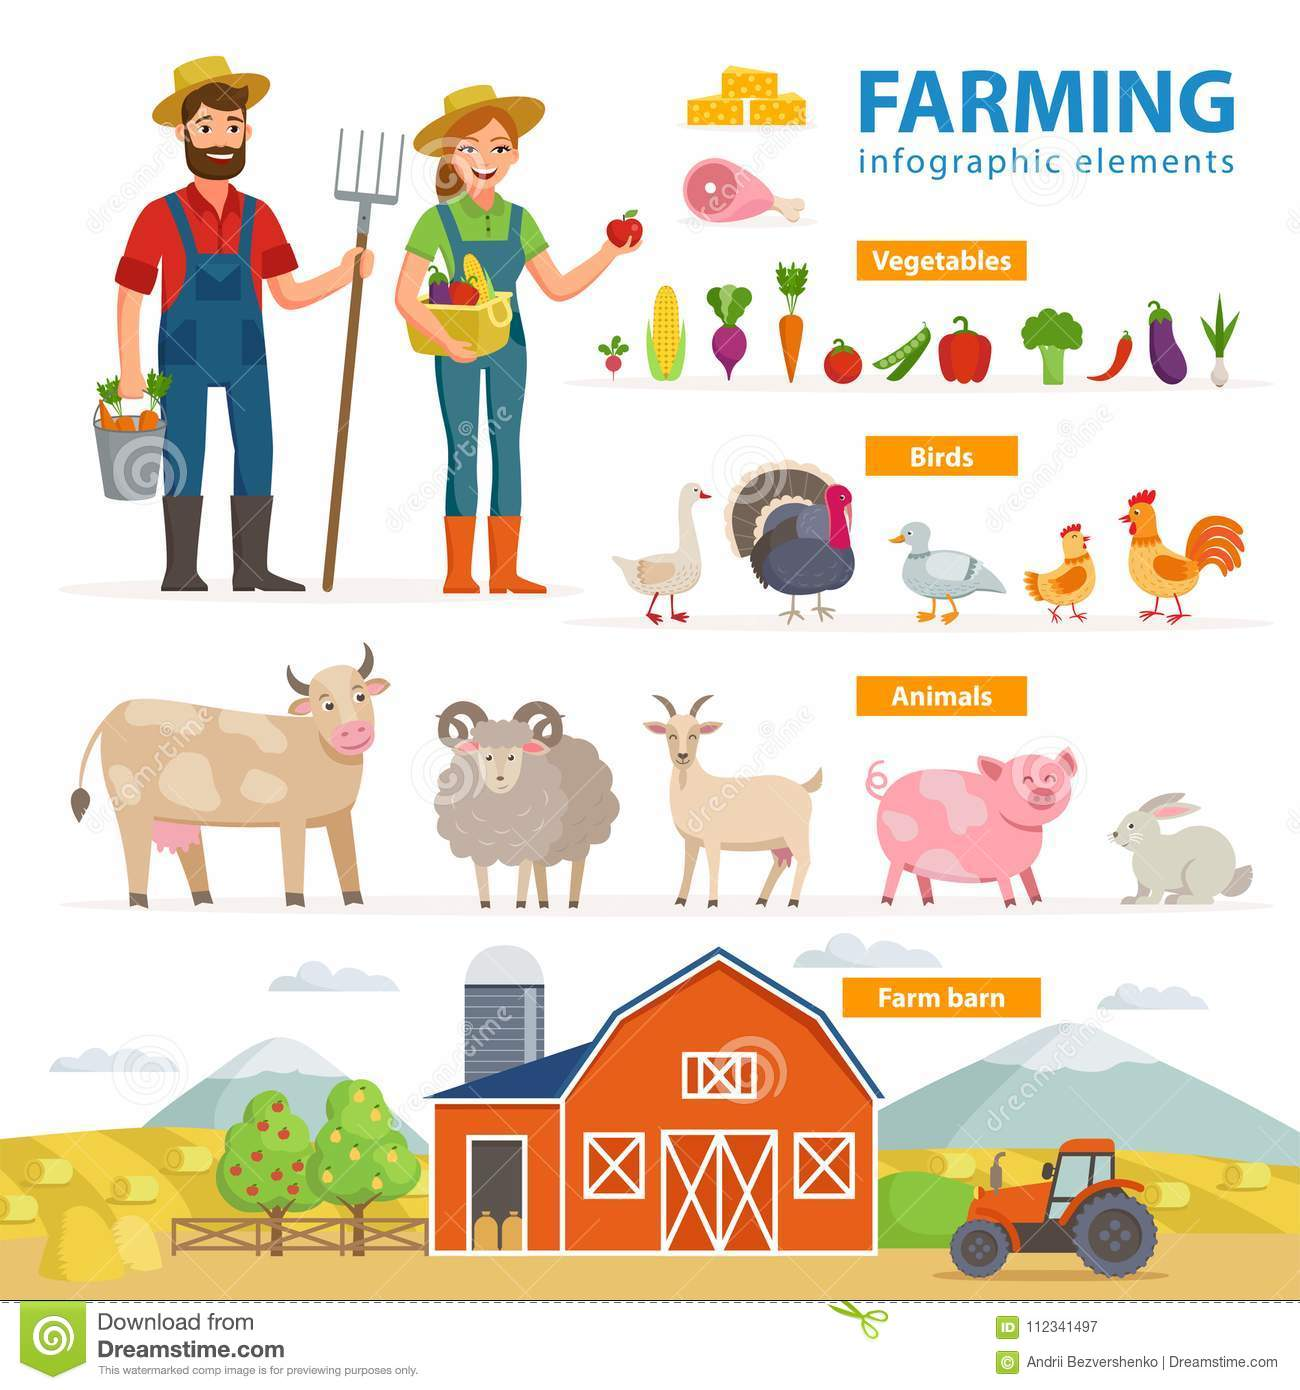 Farming Infographic Elements Two Farmers Man And Woman Farm Animals Equipment Barn Tractor Landscape Large Set Stock Vector Illustration Of Chicken Crops 112341497